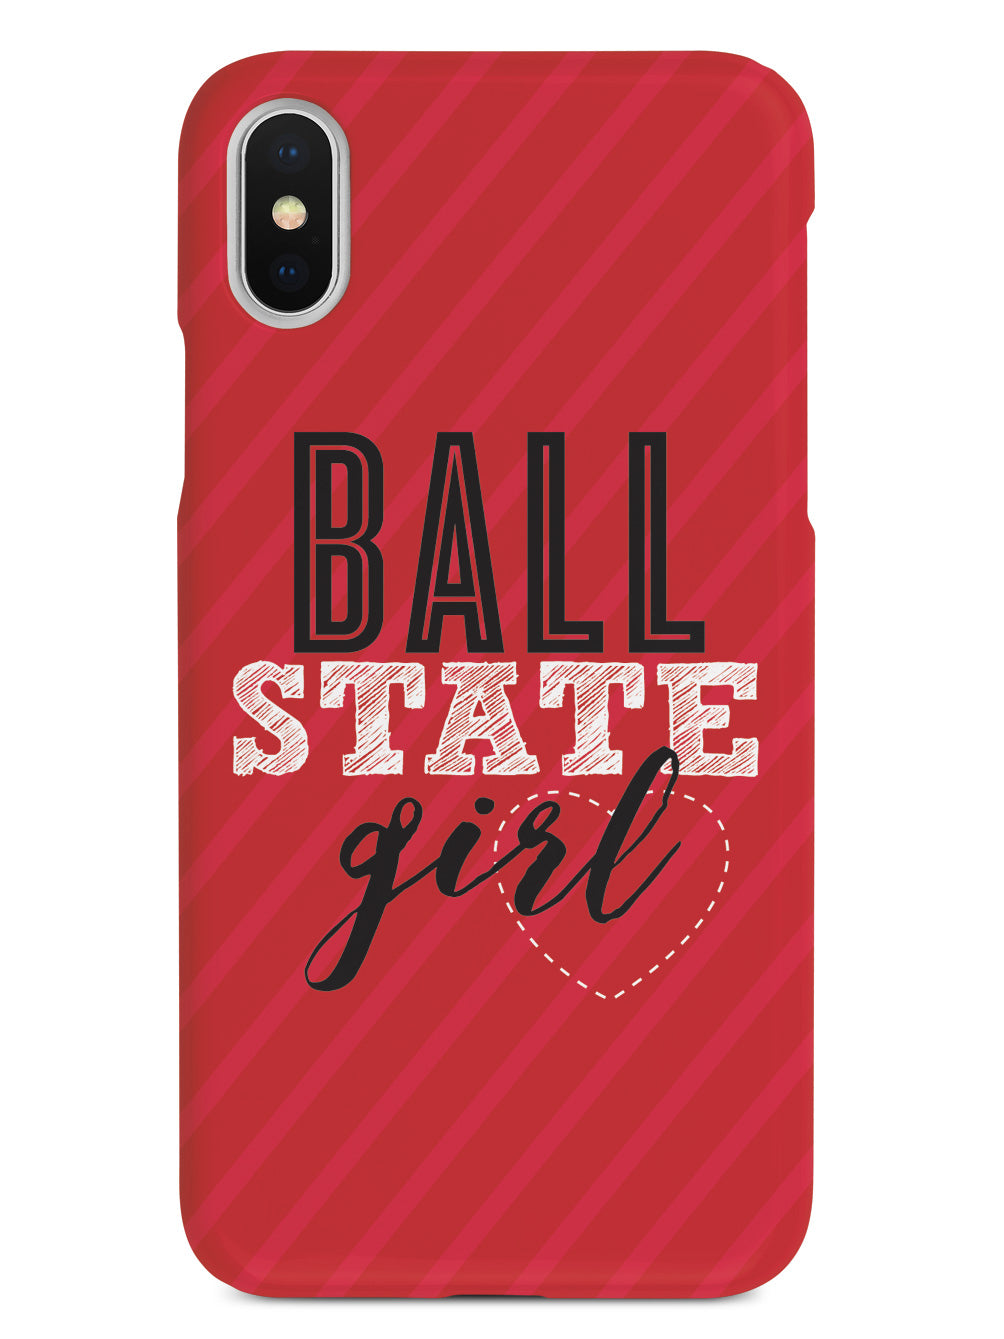 Ball State Girl Case